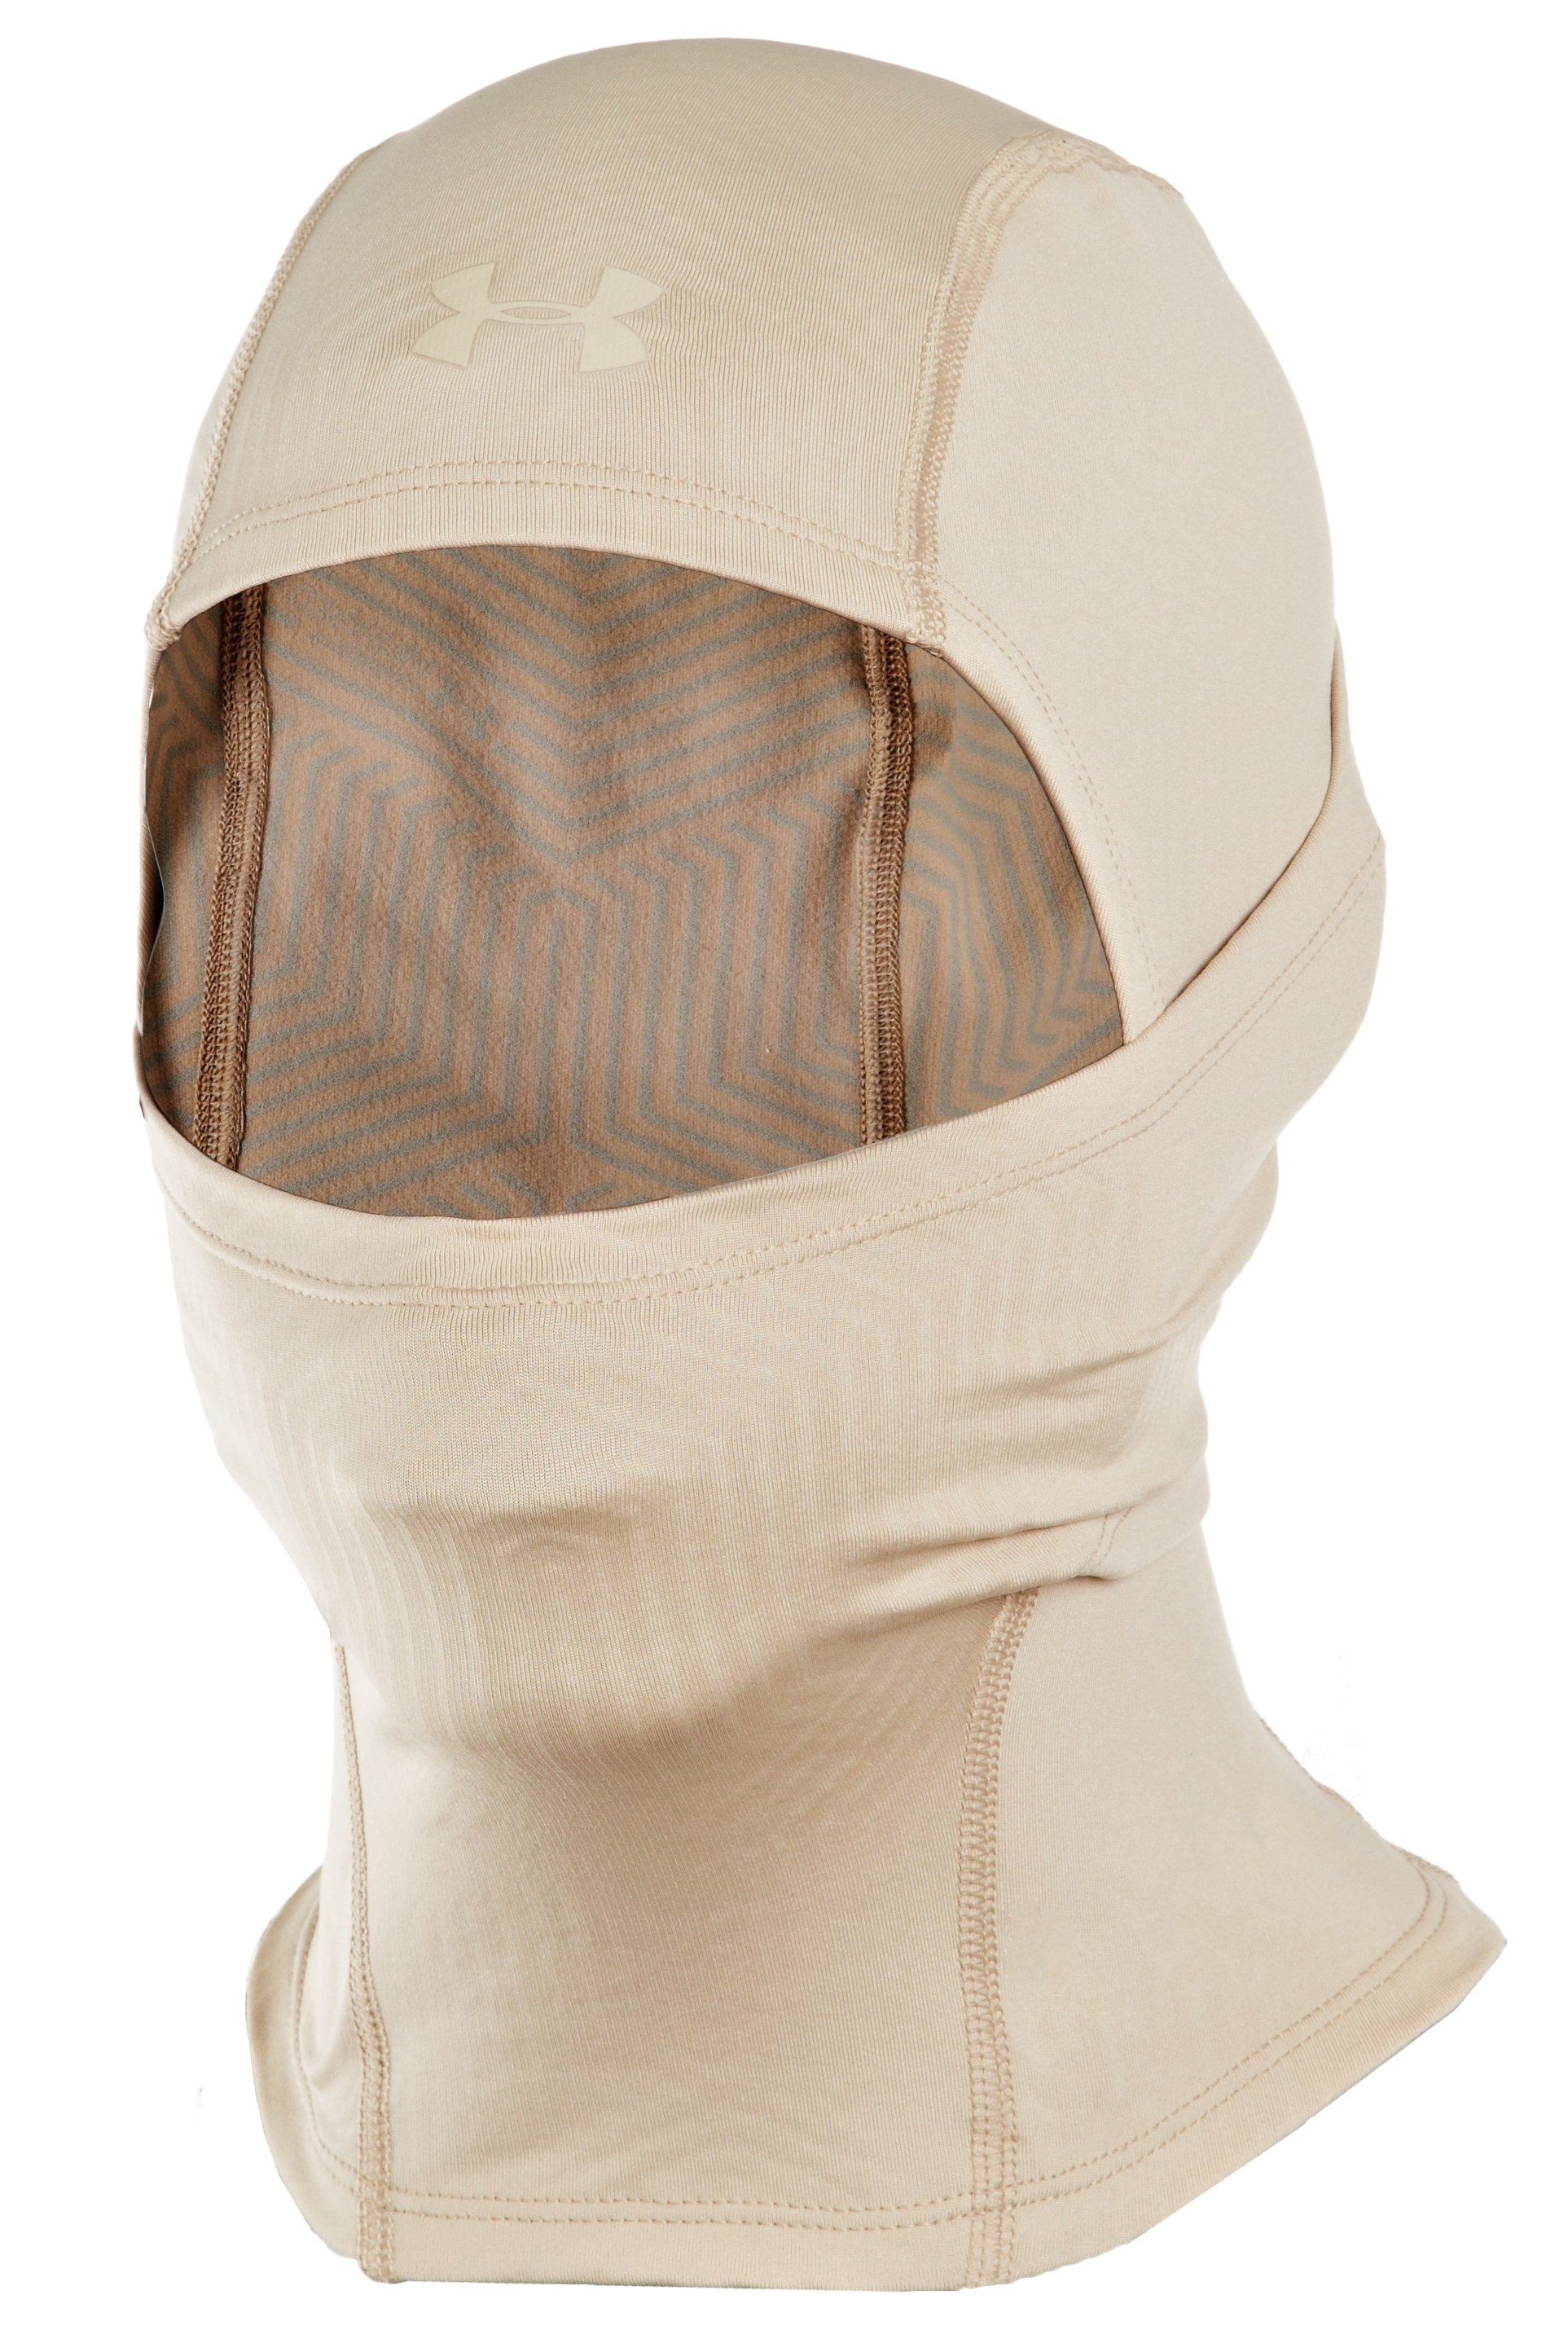 Men's ColdGear® Infrared Tactical Hood, Desert Sand, zoomed image